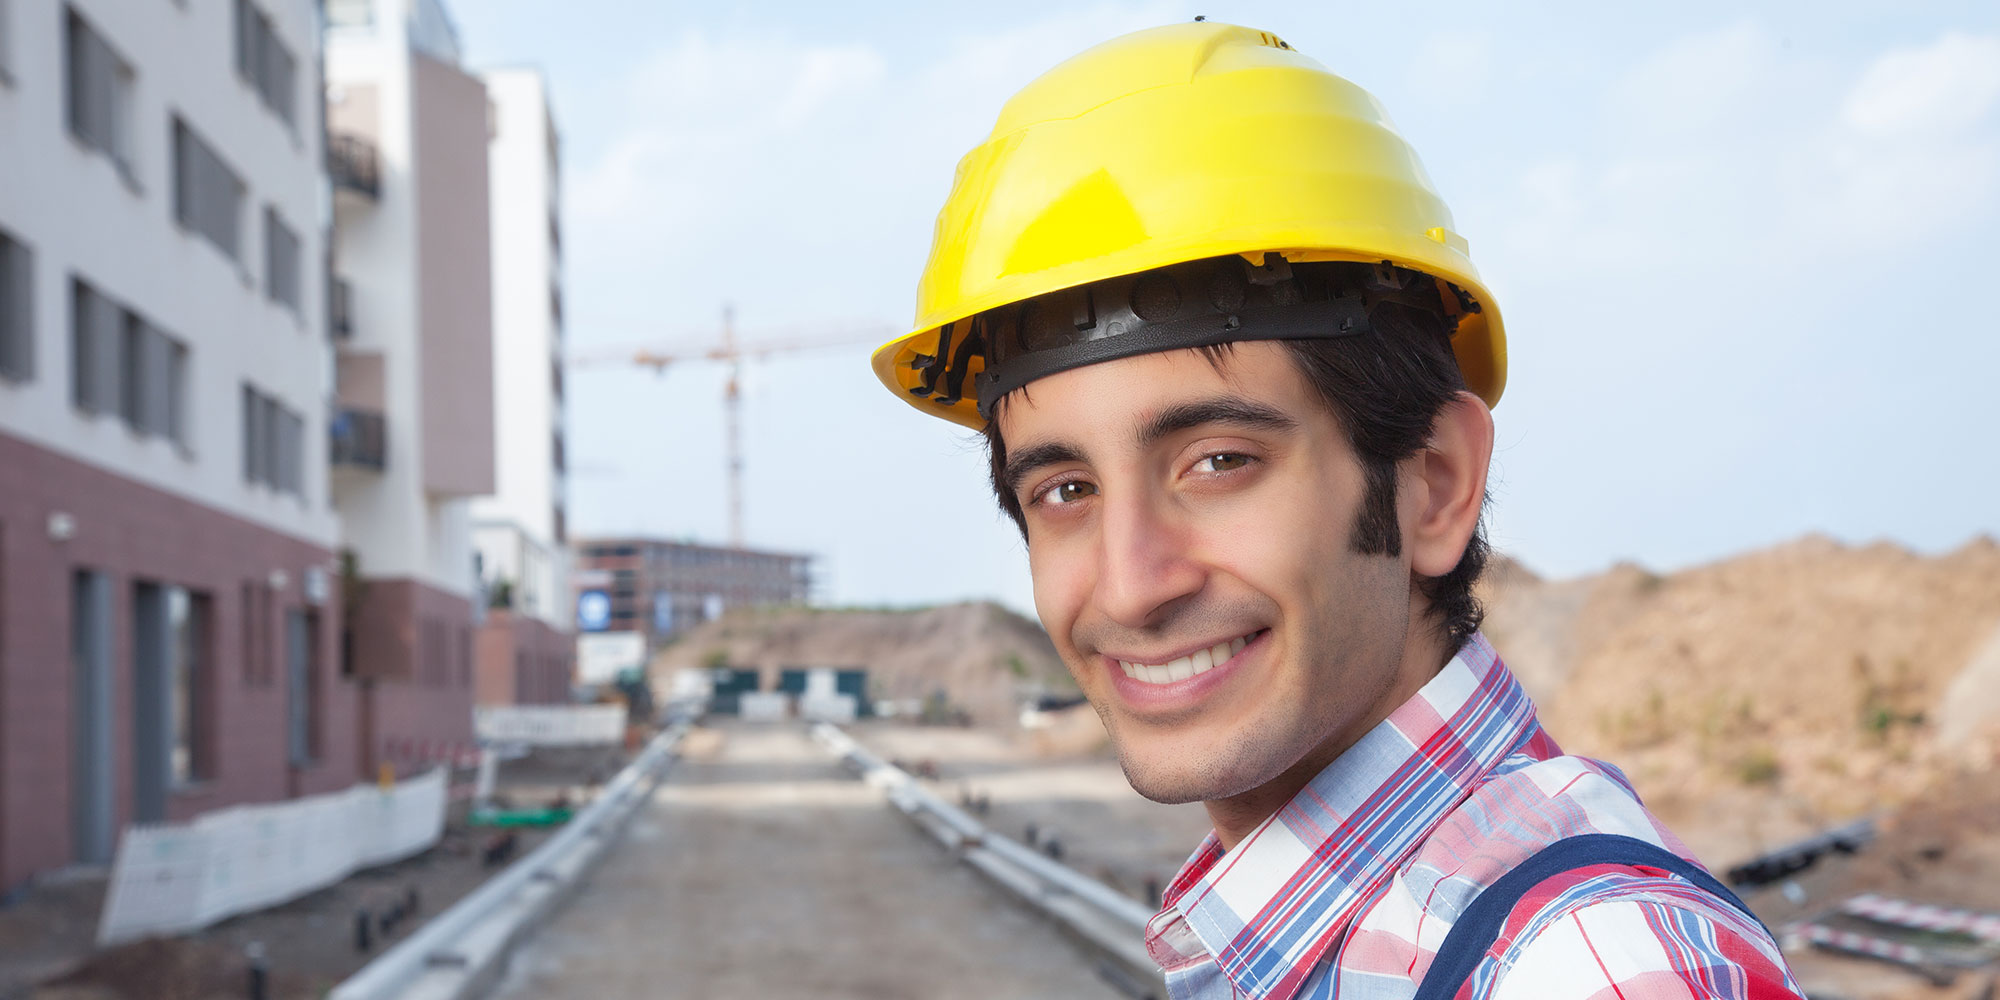 What is the New Worker Permit Law in Utah?